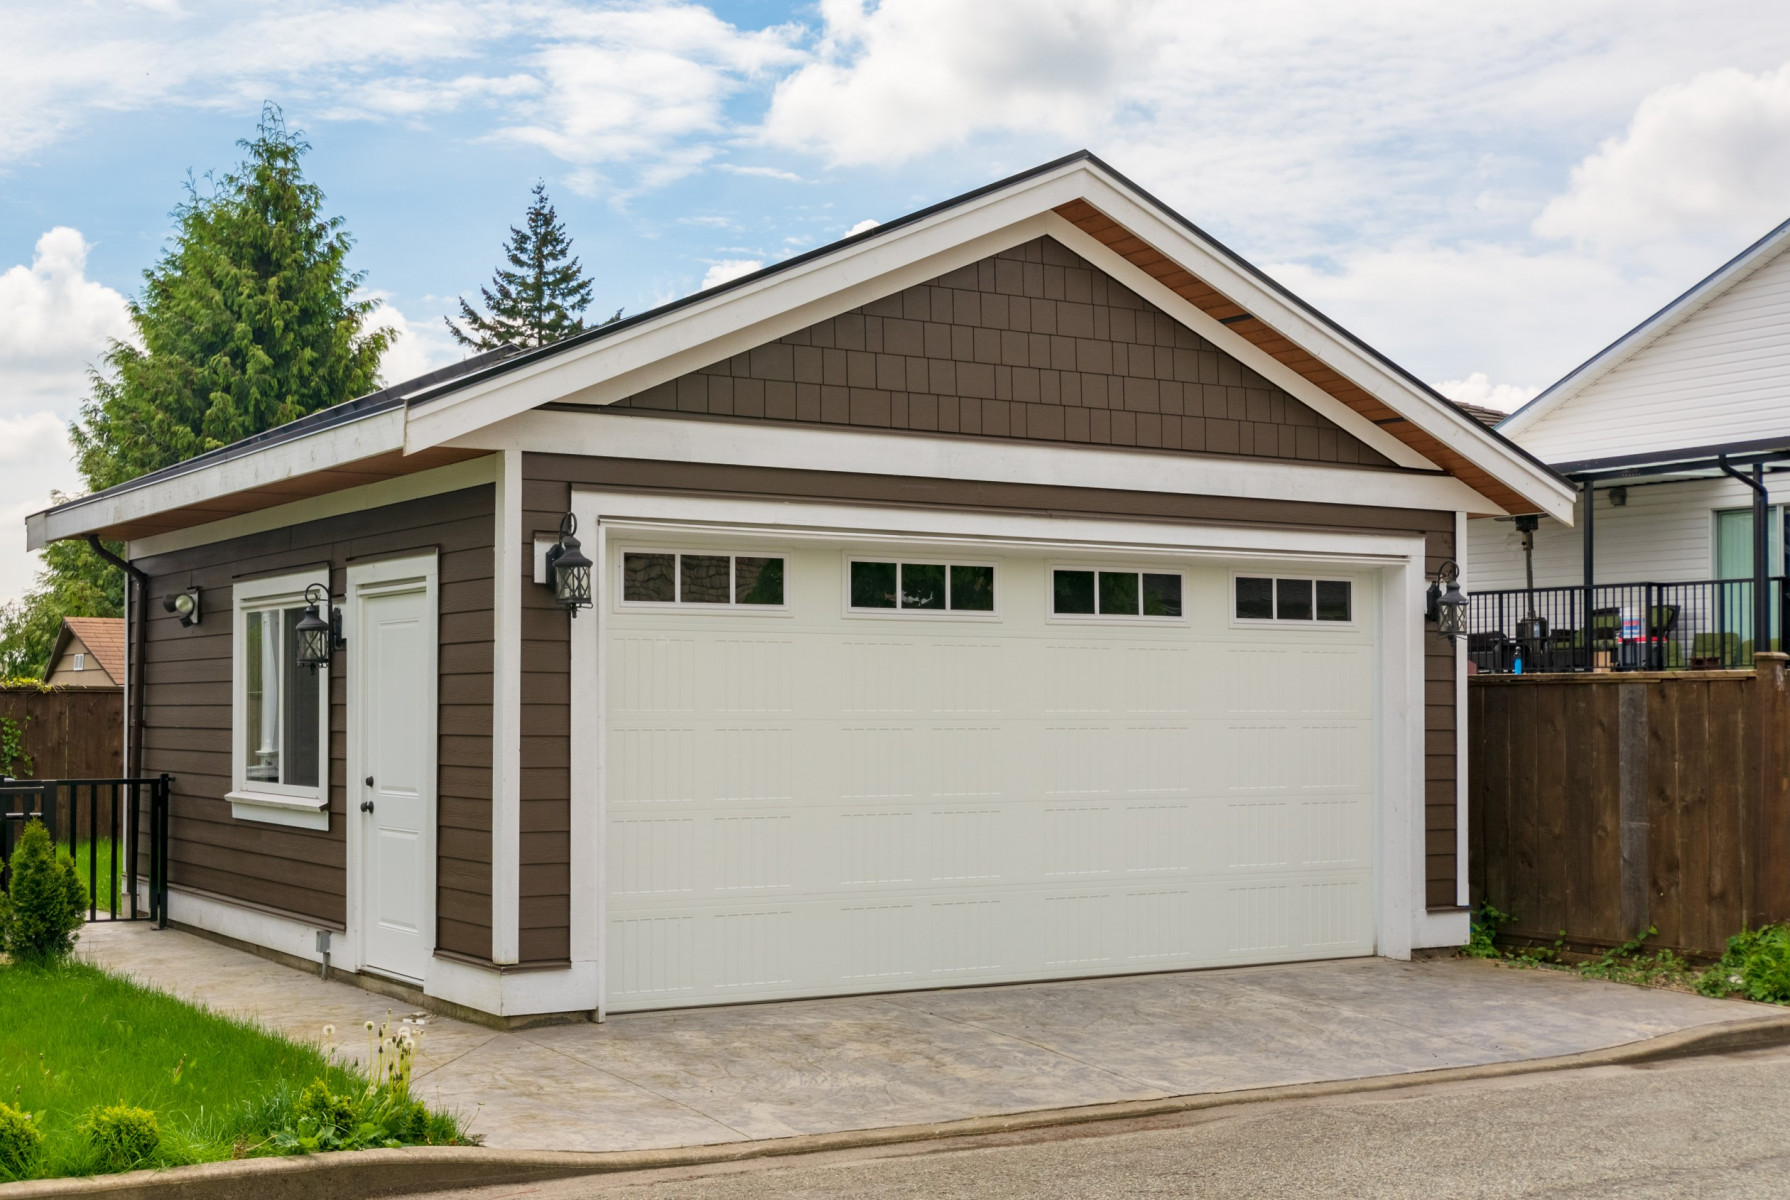 Two Car Detached Garage Builders In Chicago, How Much Is A 2 Car Detached Garage